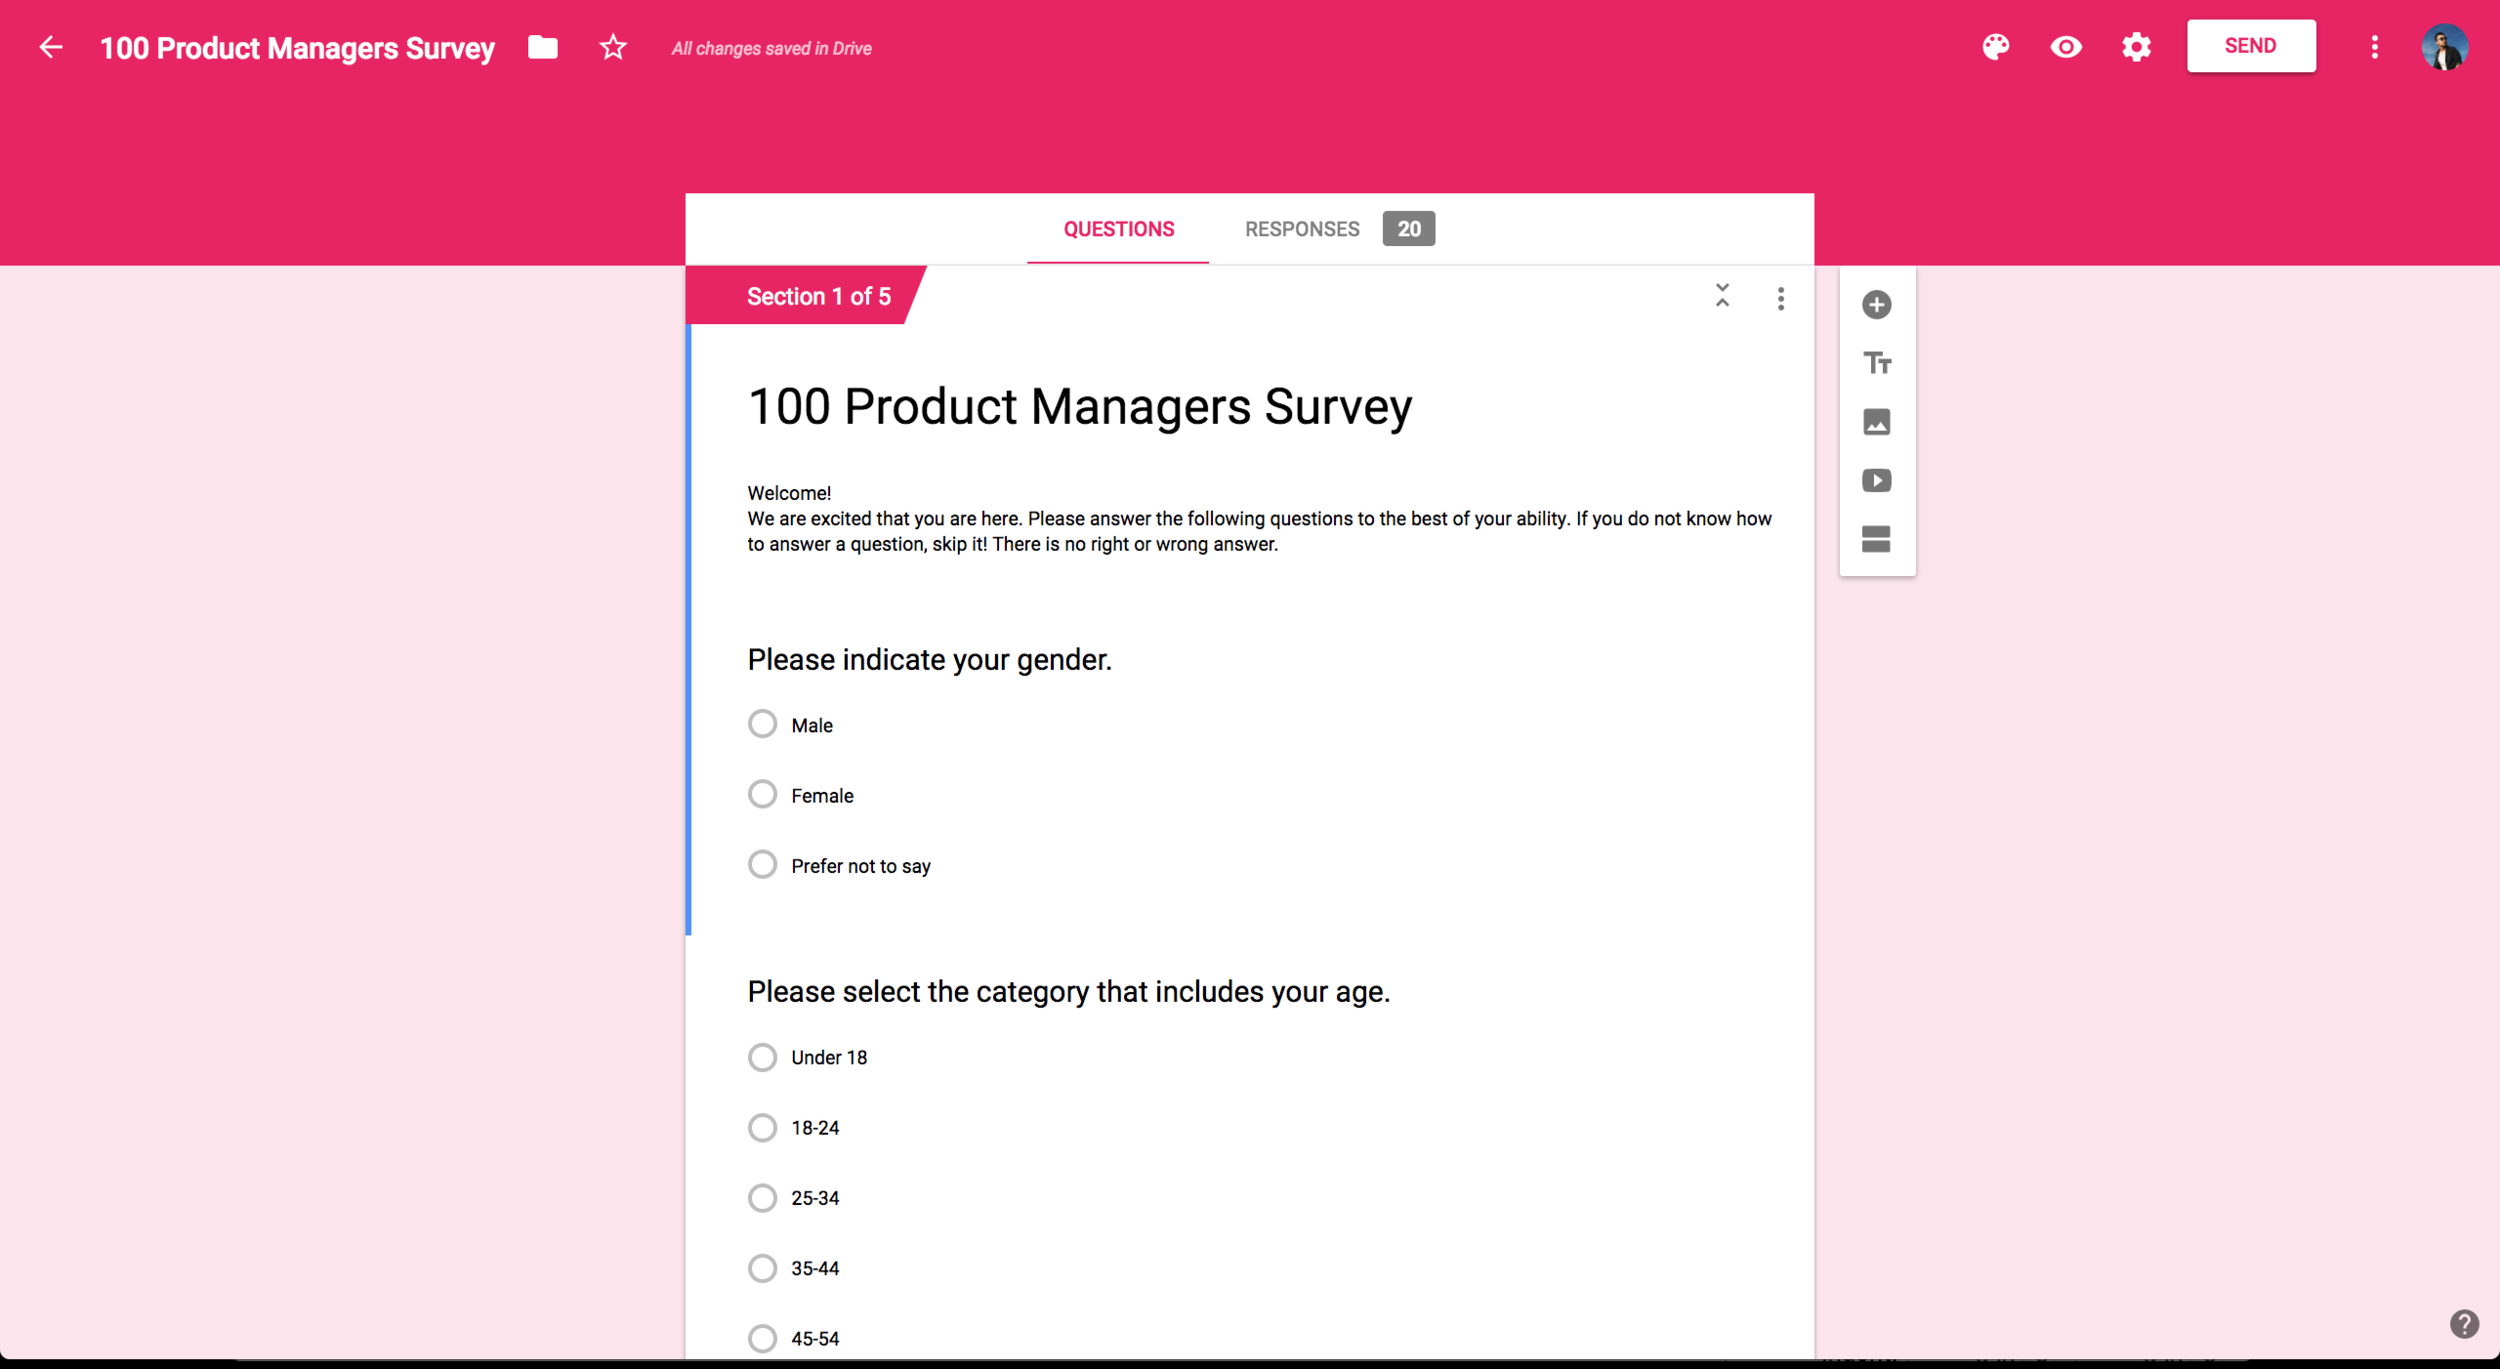 San Do UX Designer 100 Product Managers Survey